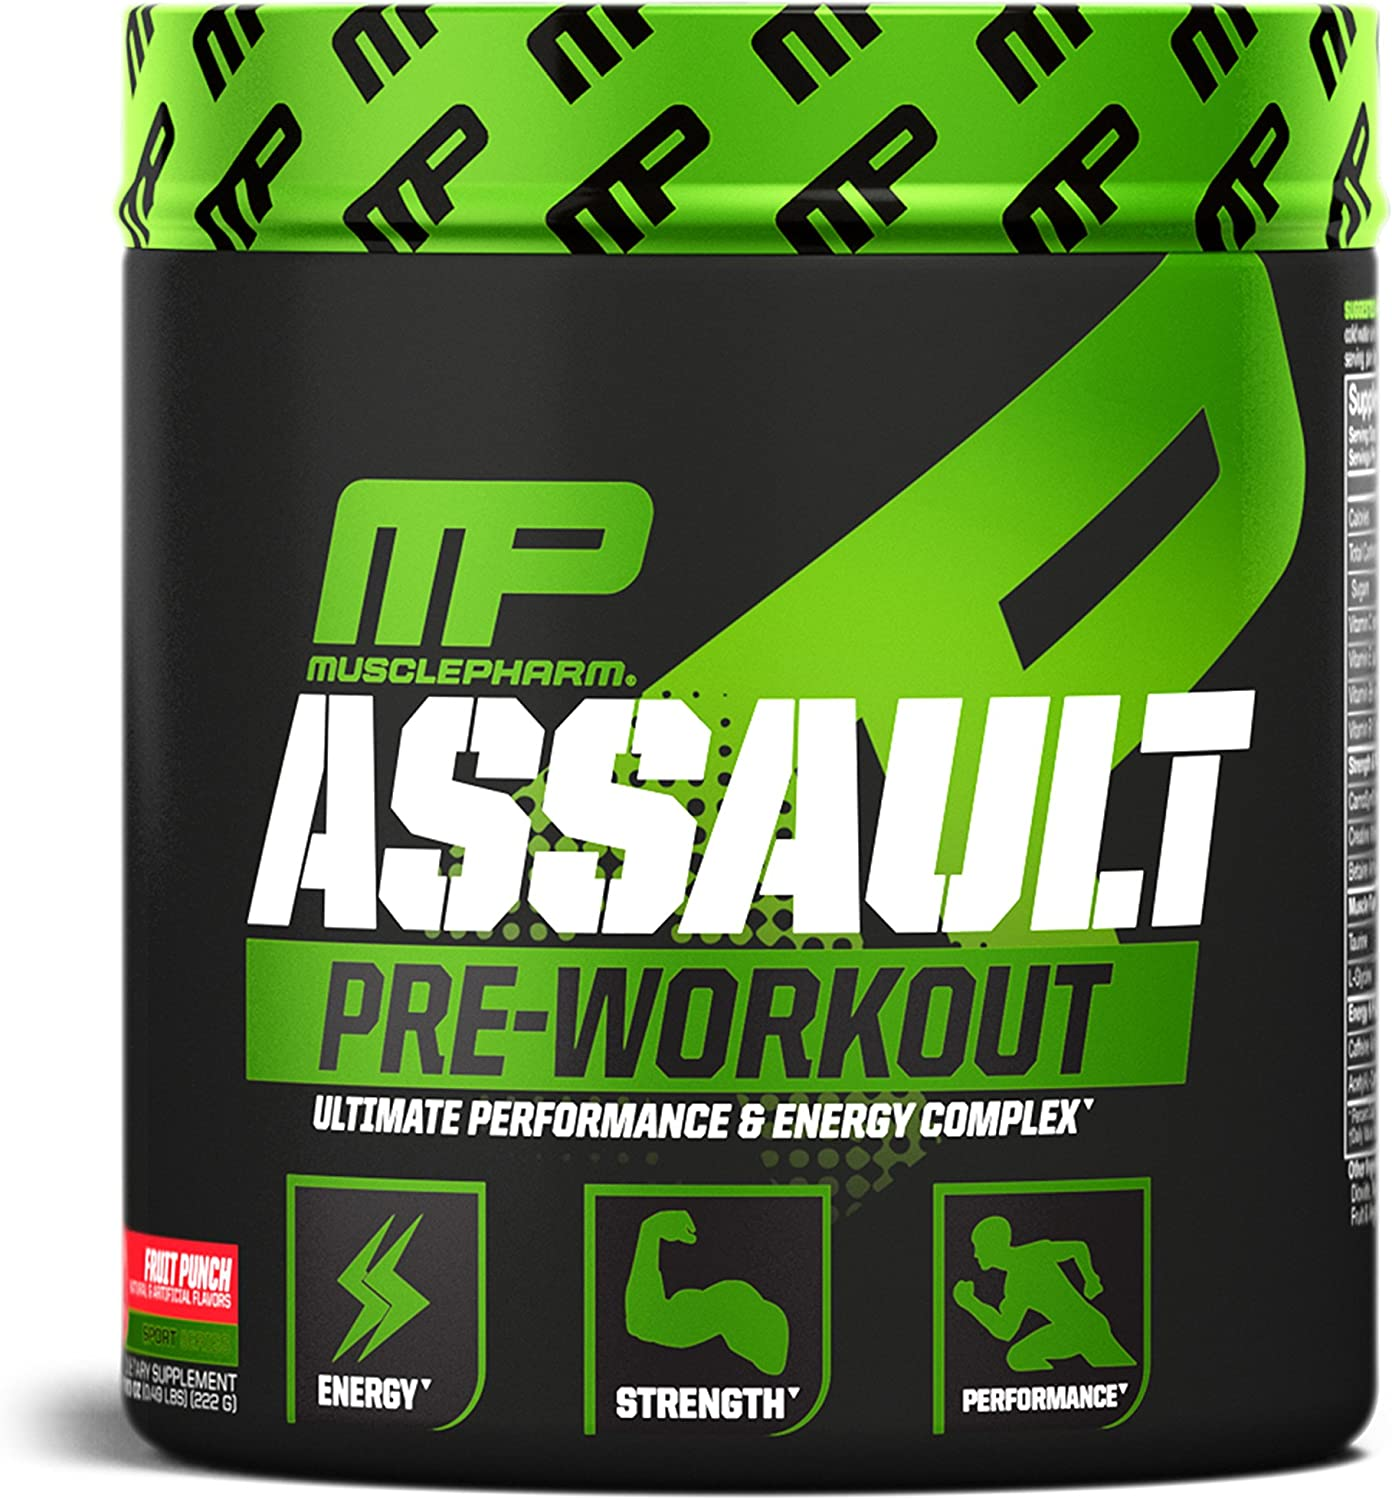 MusclePharm Assault Pre-Workout Powder, Pre-Workout Creatine for Energy, Focus, Strength, and Endurance with Creatine, Taurine, and Caffeine